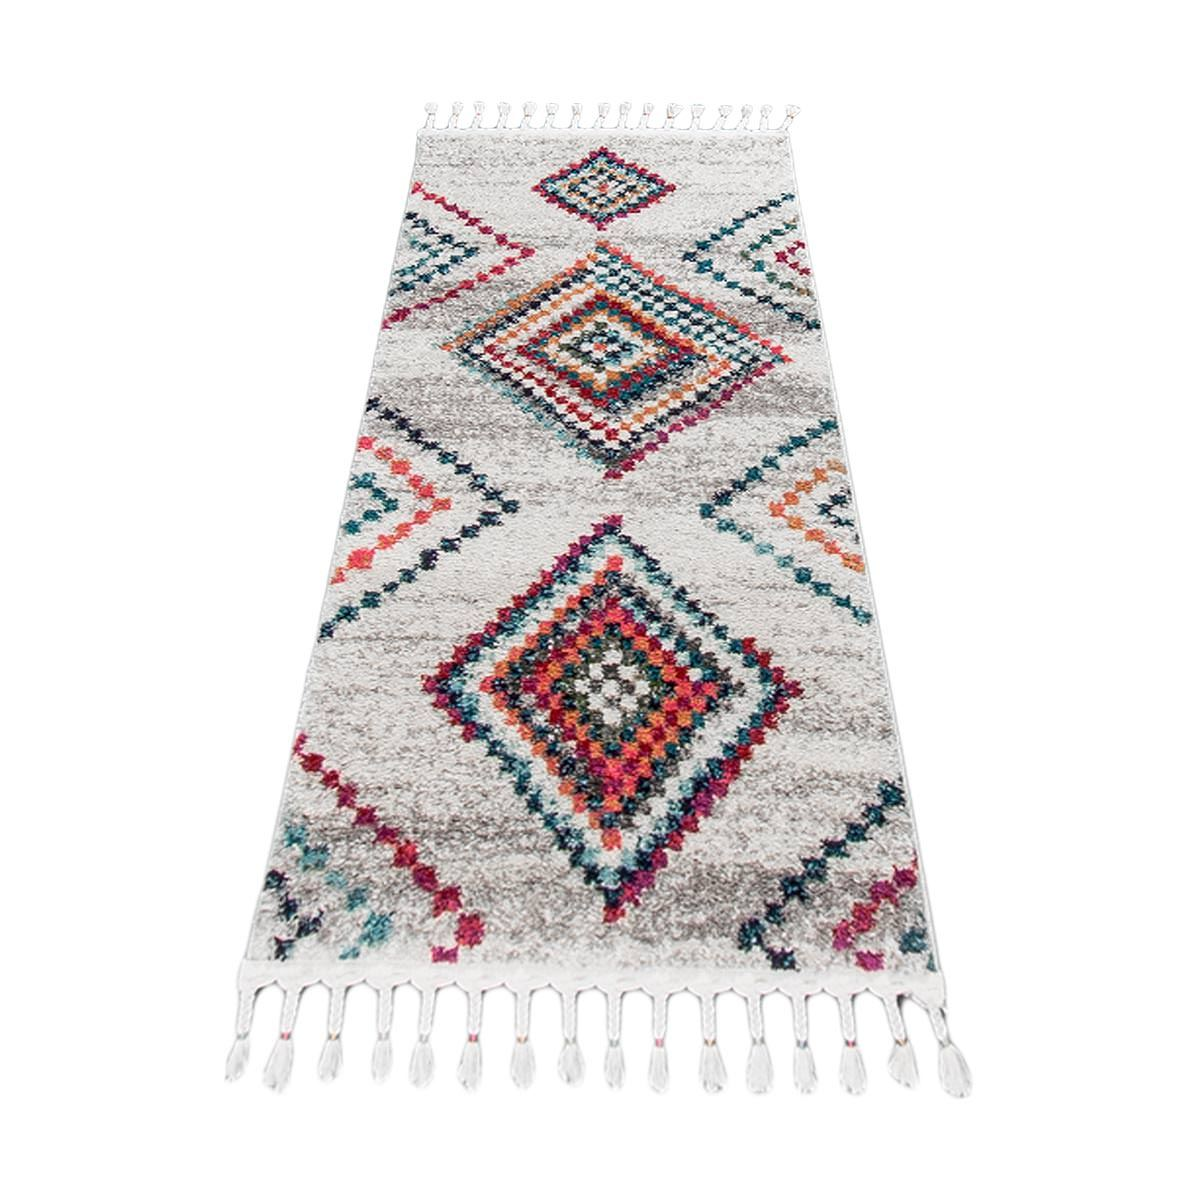 Mykonos Rug 02 Cream/Grey Runner 6